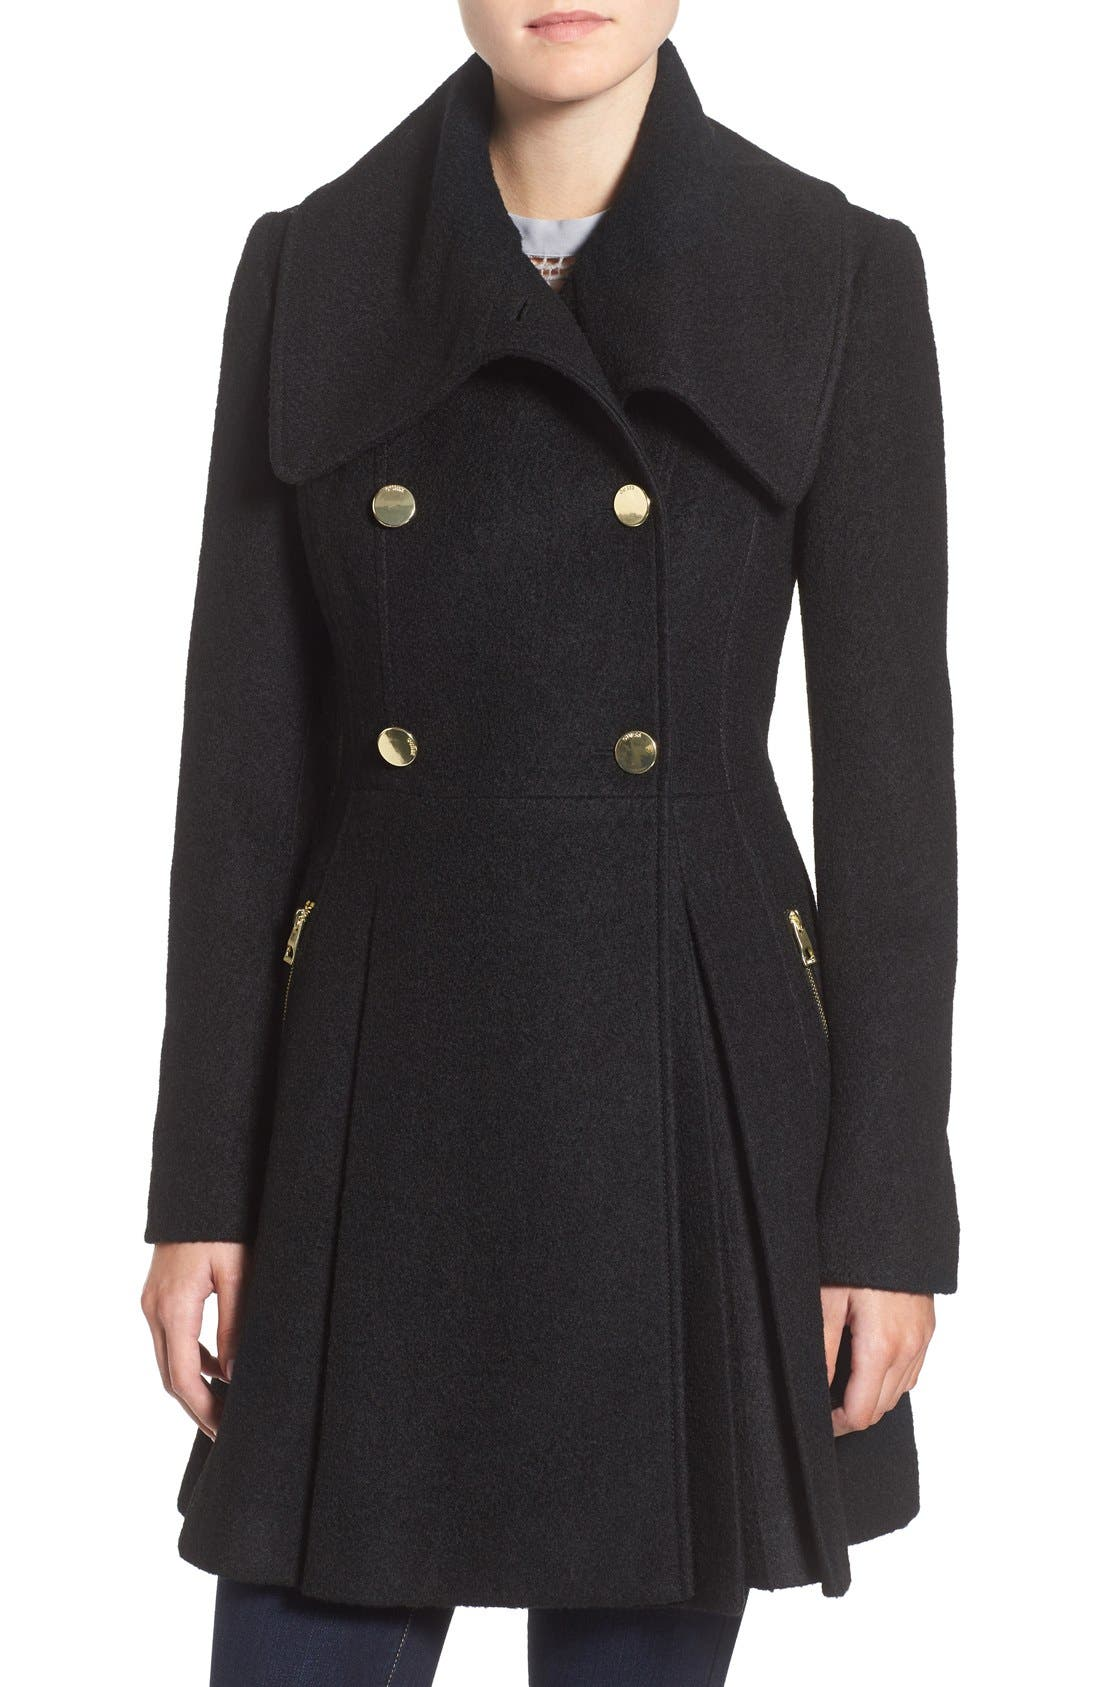 GUESS Envelope Collar Double Breasted Coat, Main, color, 001